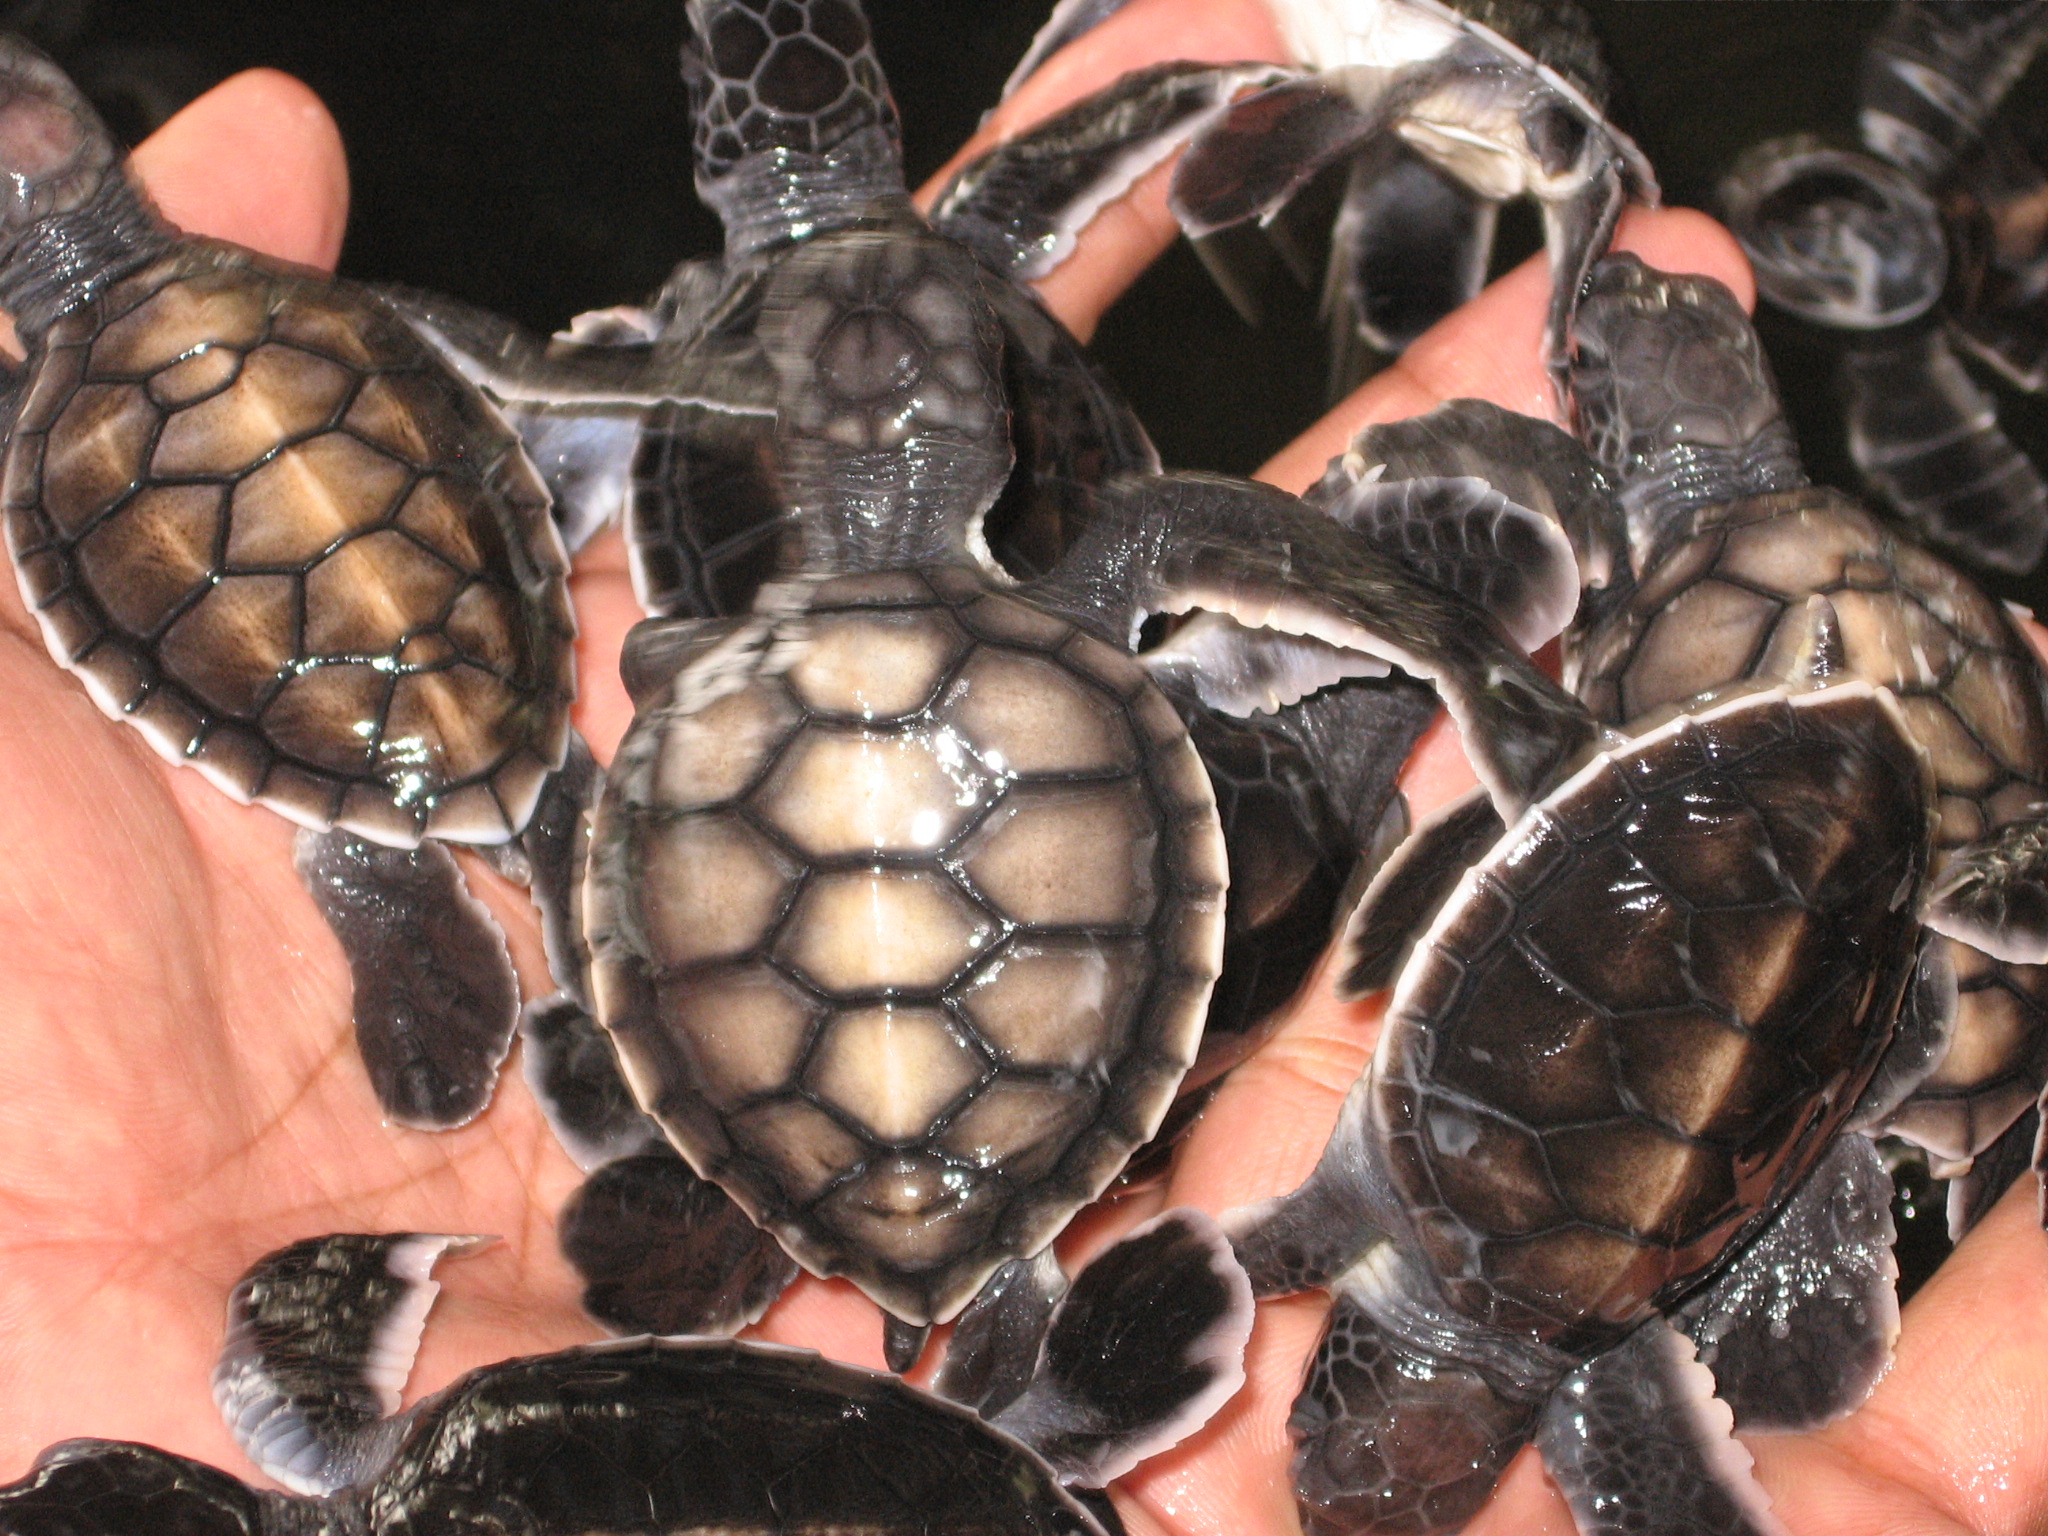 Baby Turtles, Animals, Baby, Beaks, Carapace, HQ Photo